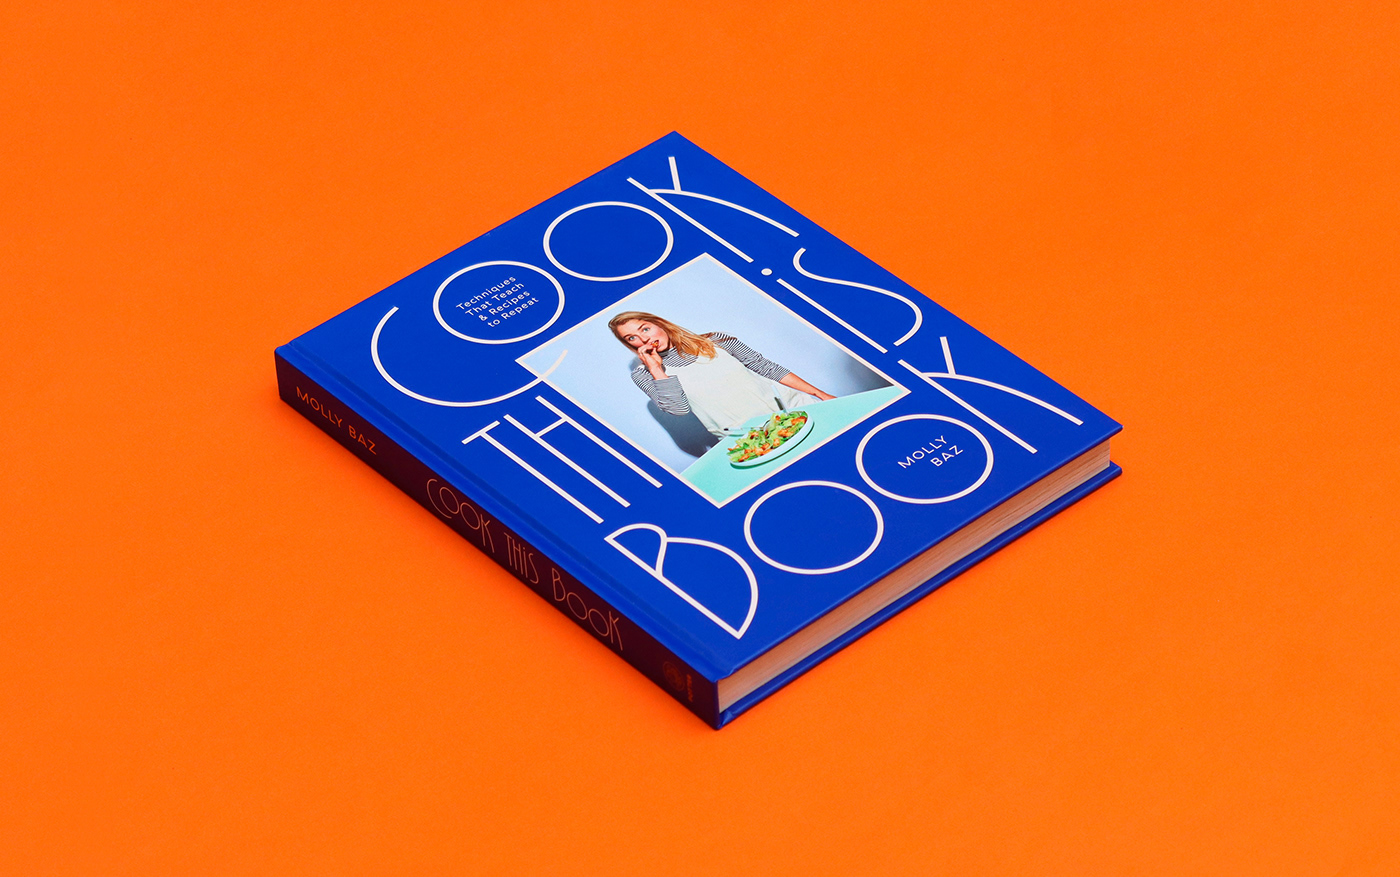 Thumbnail for Molly Baz's 'Cook this Book' Design Is Heating Up The Cook Book Industry